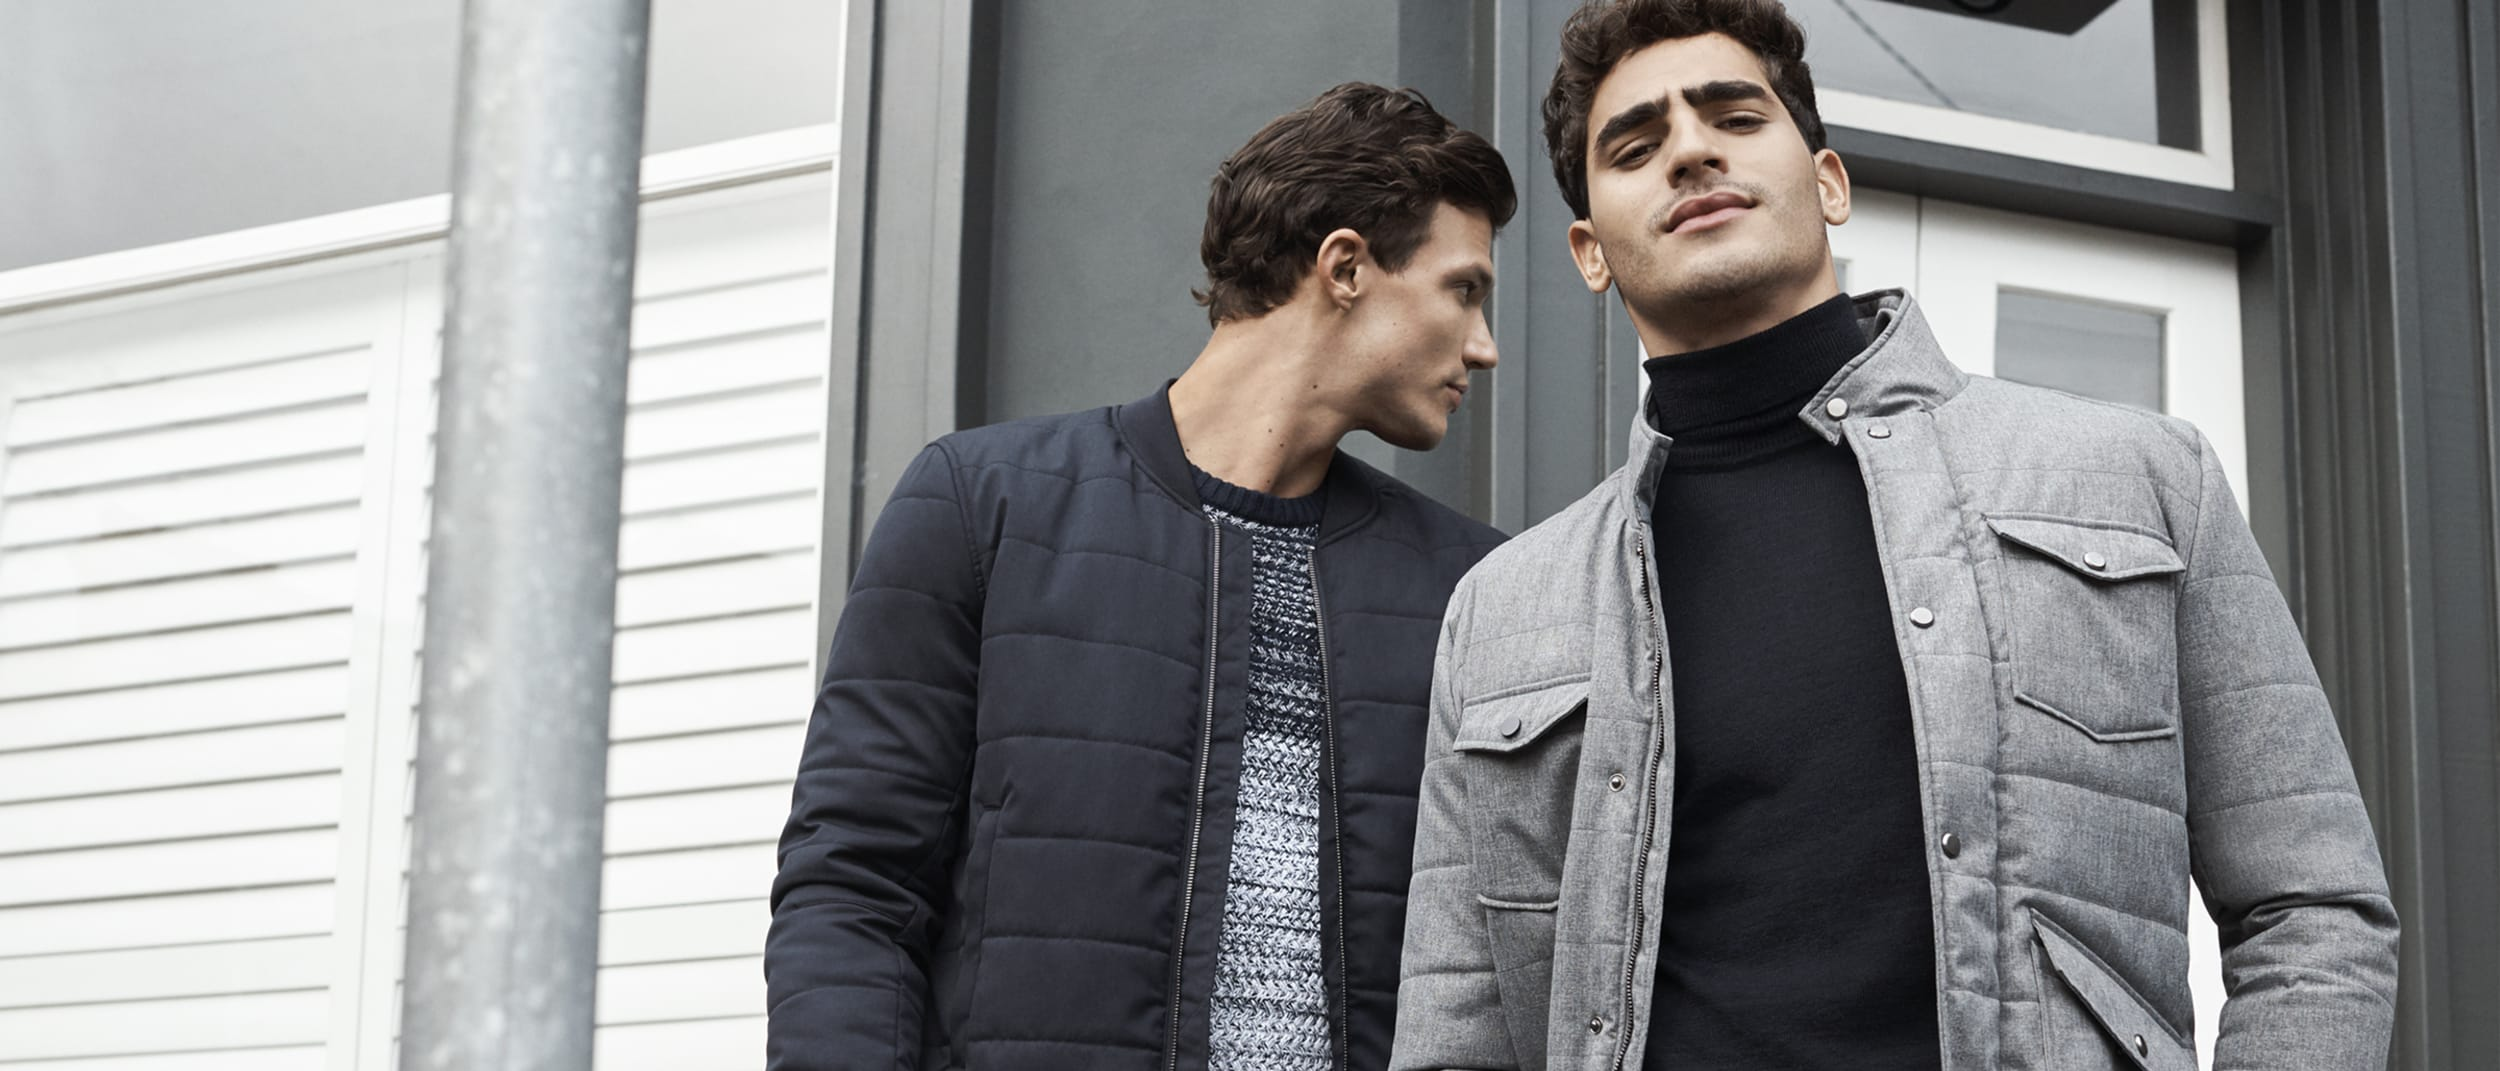 Politix: $100 off casual jackets, top and bottom combo